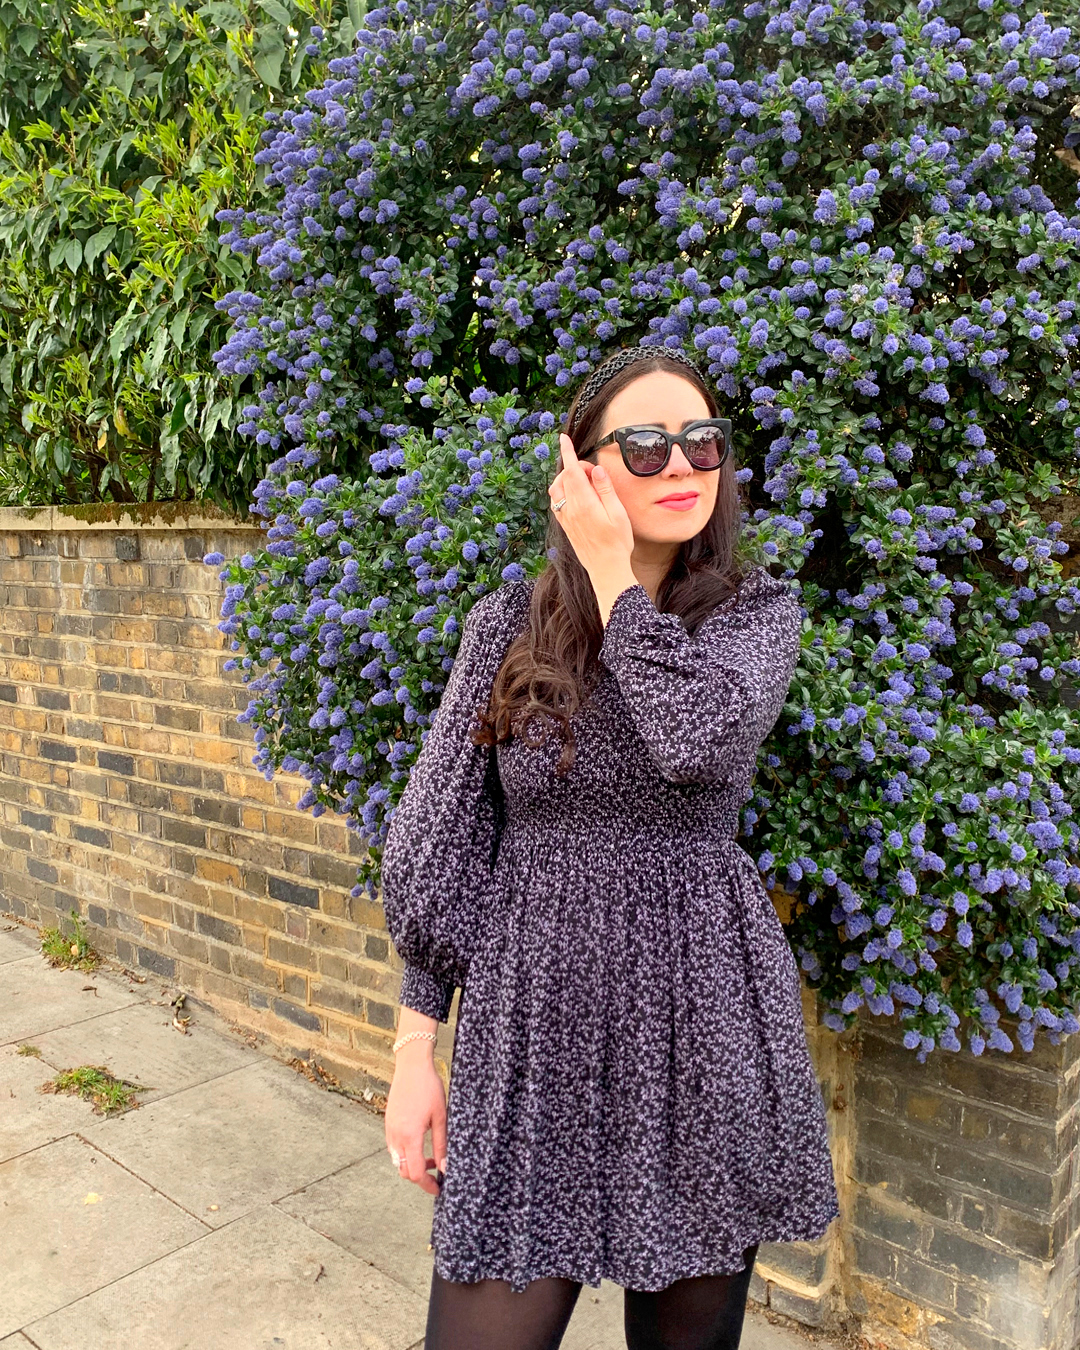 Ceanothus Camouflage - & Other Stories purple floral dress, Emma Louise Layla Berry - style blog